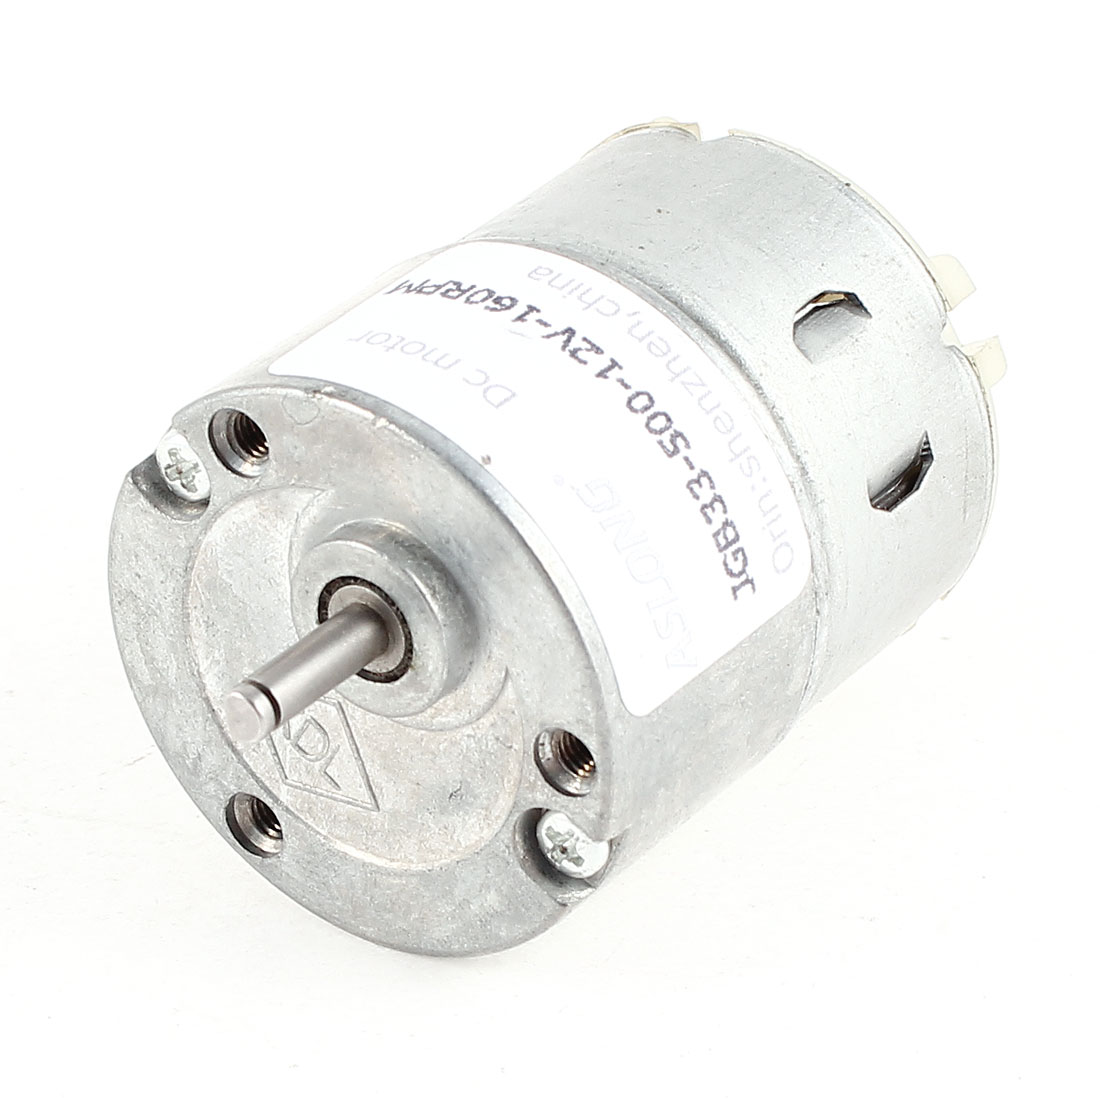 DC 12V 160RPM 3Kg.cm Torque 3mm Shaft Electric Gear Box Speed Reducer Mini Motor